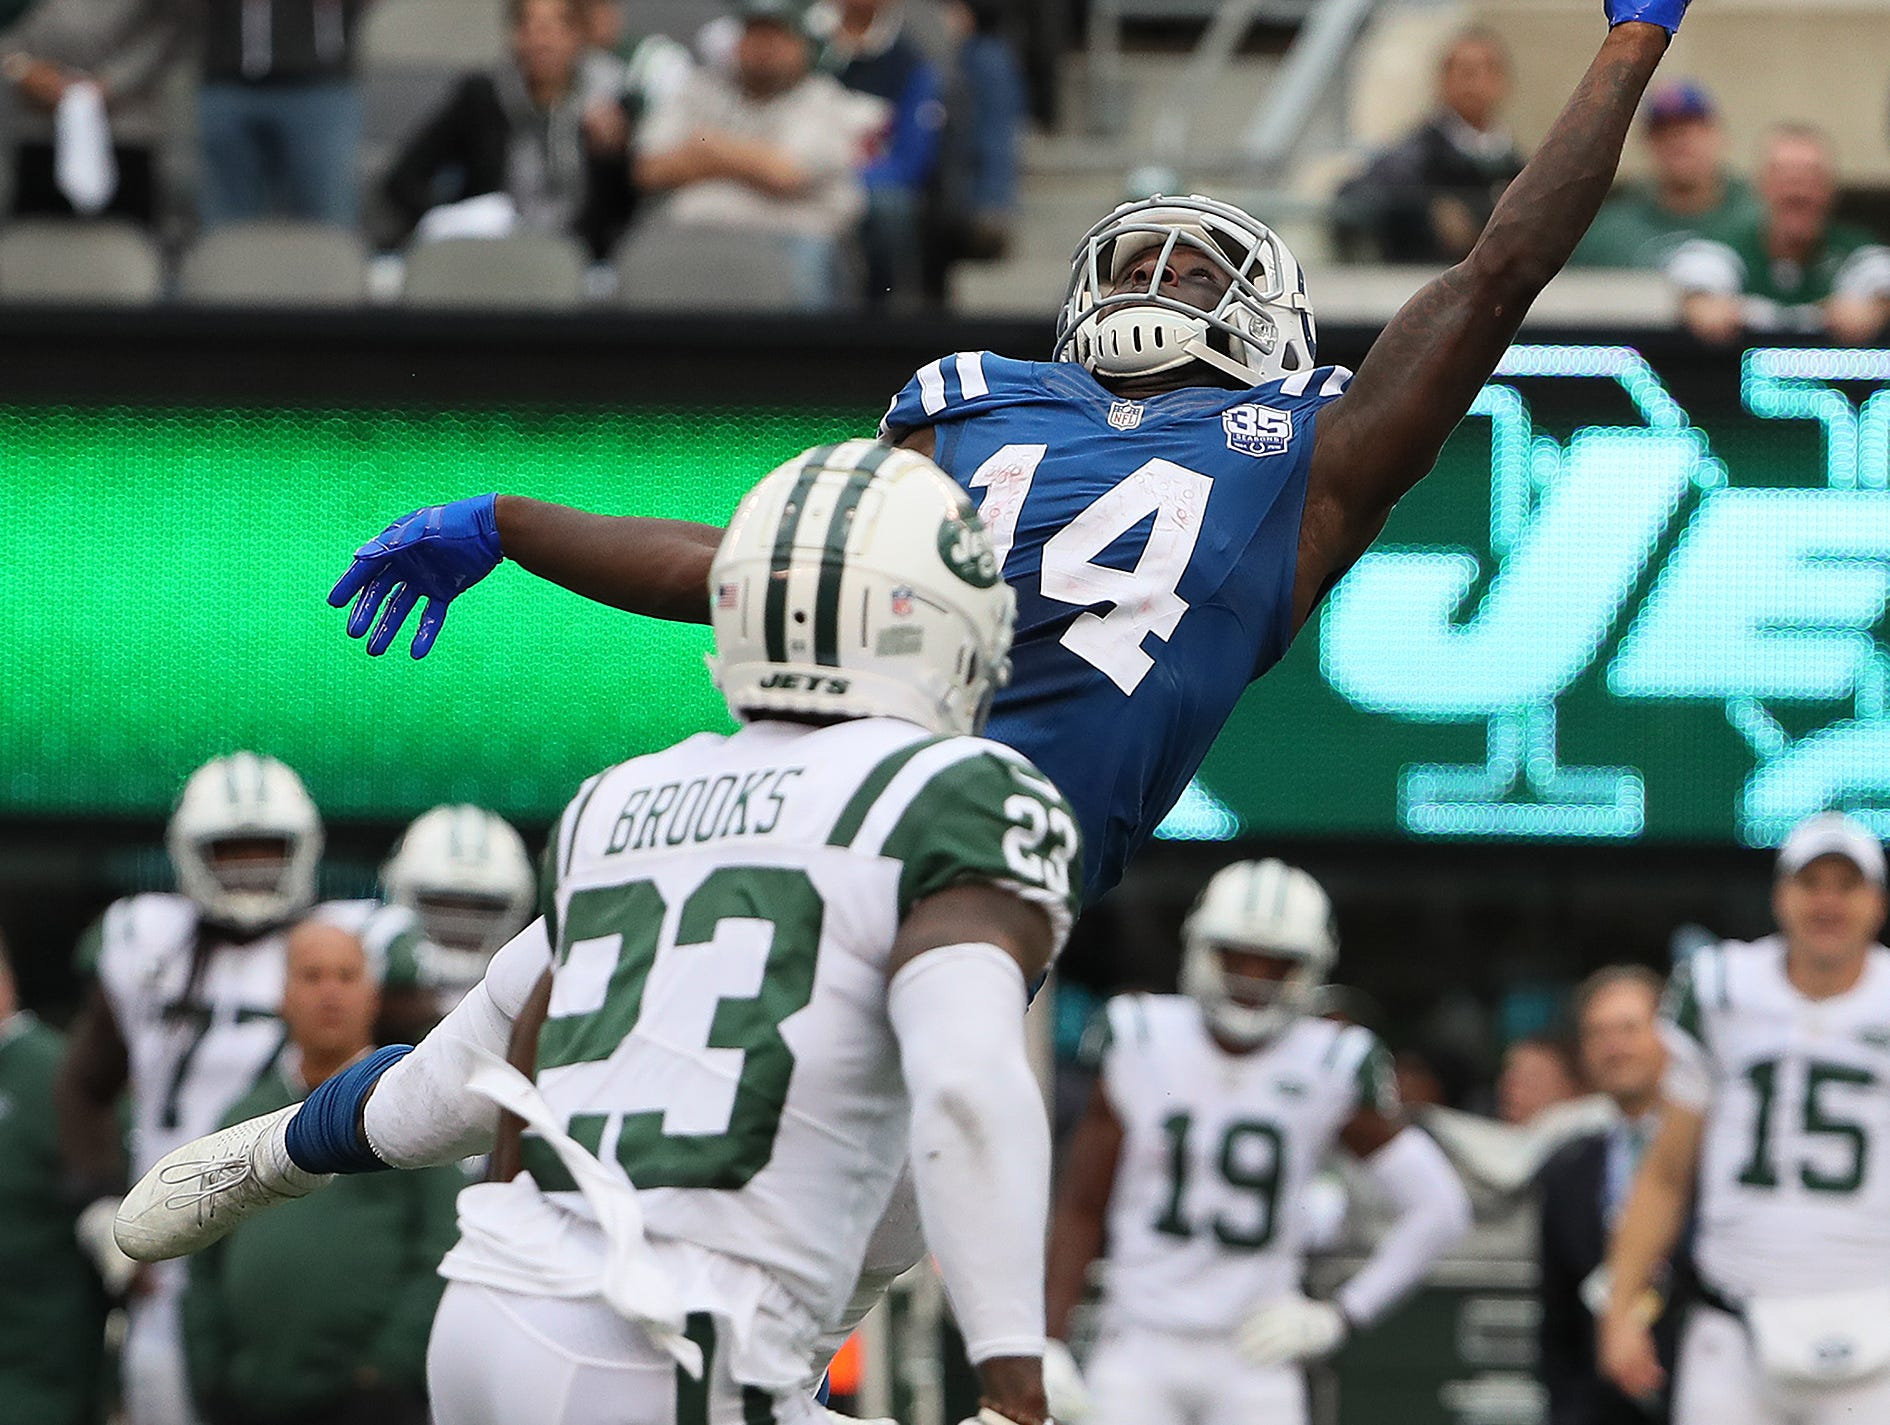 Indianapolis Colts wide receiver Zach Pascal (14) attempts to make a catch but drops the pass in the fourth quarter of their game against the New York Jets at MetLife Stadium in East Rutherford, N.J., Sunday, Oct. 14, 2018.